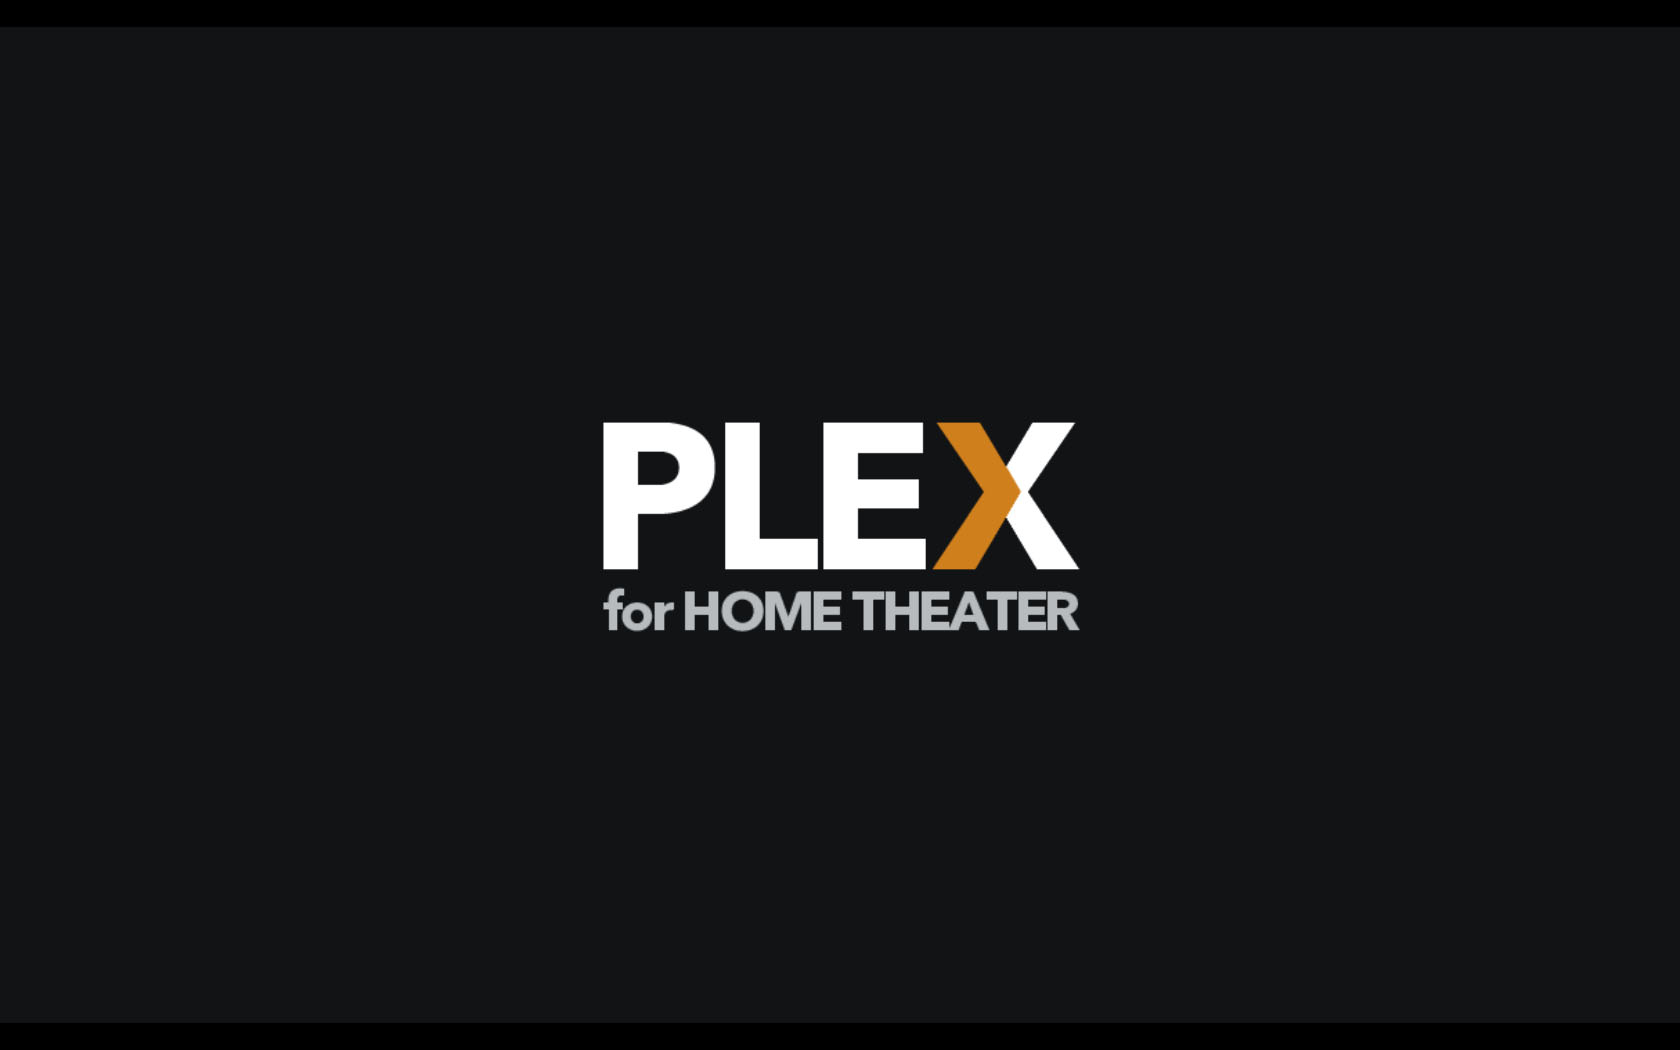 Plex Wallpaper Wallpapersafari